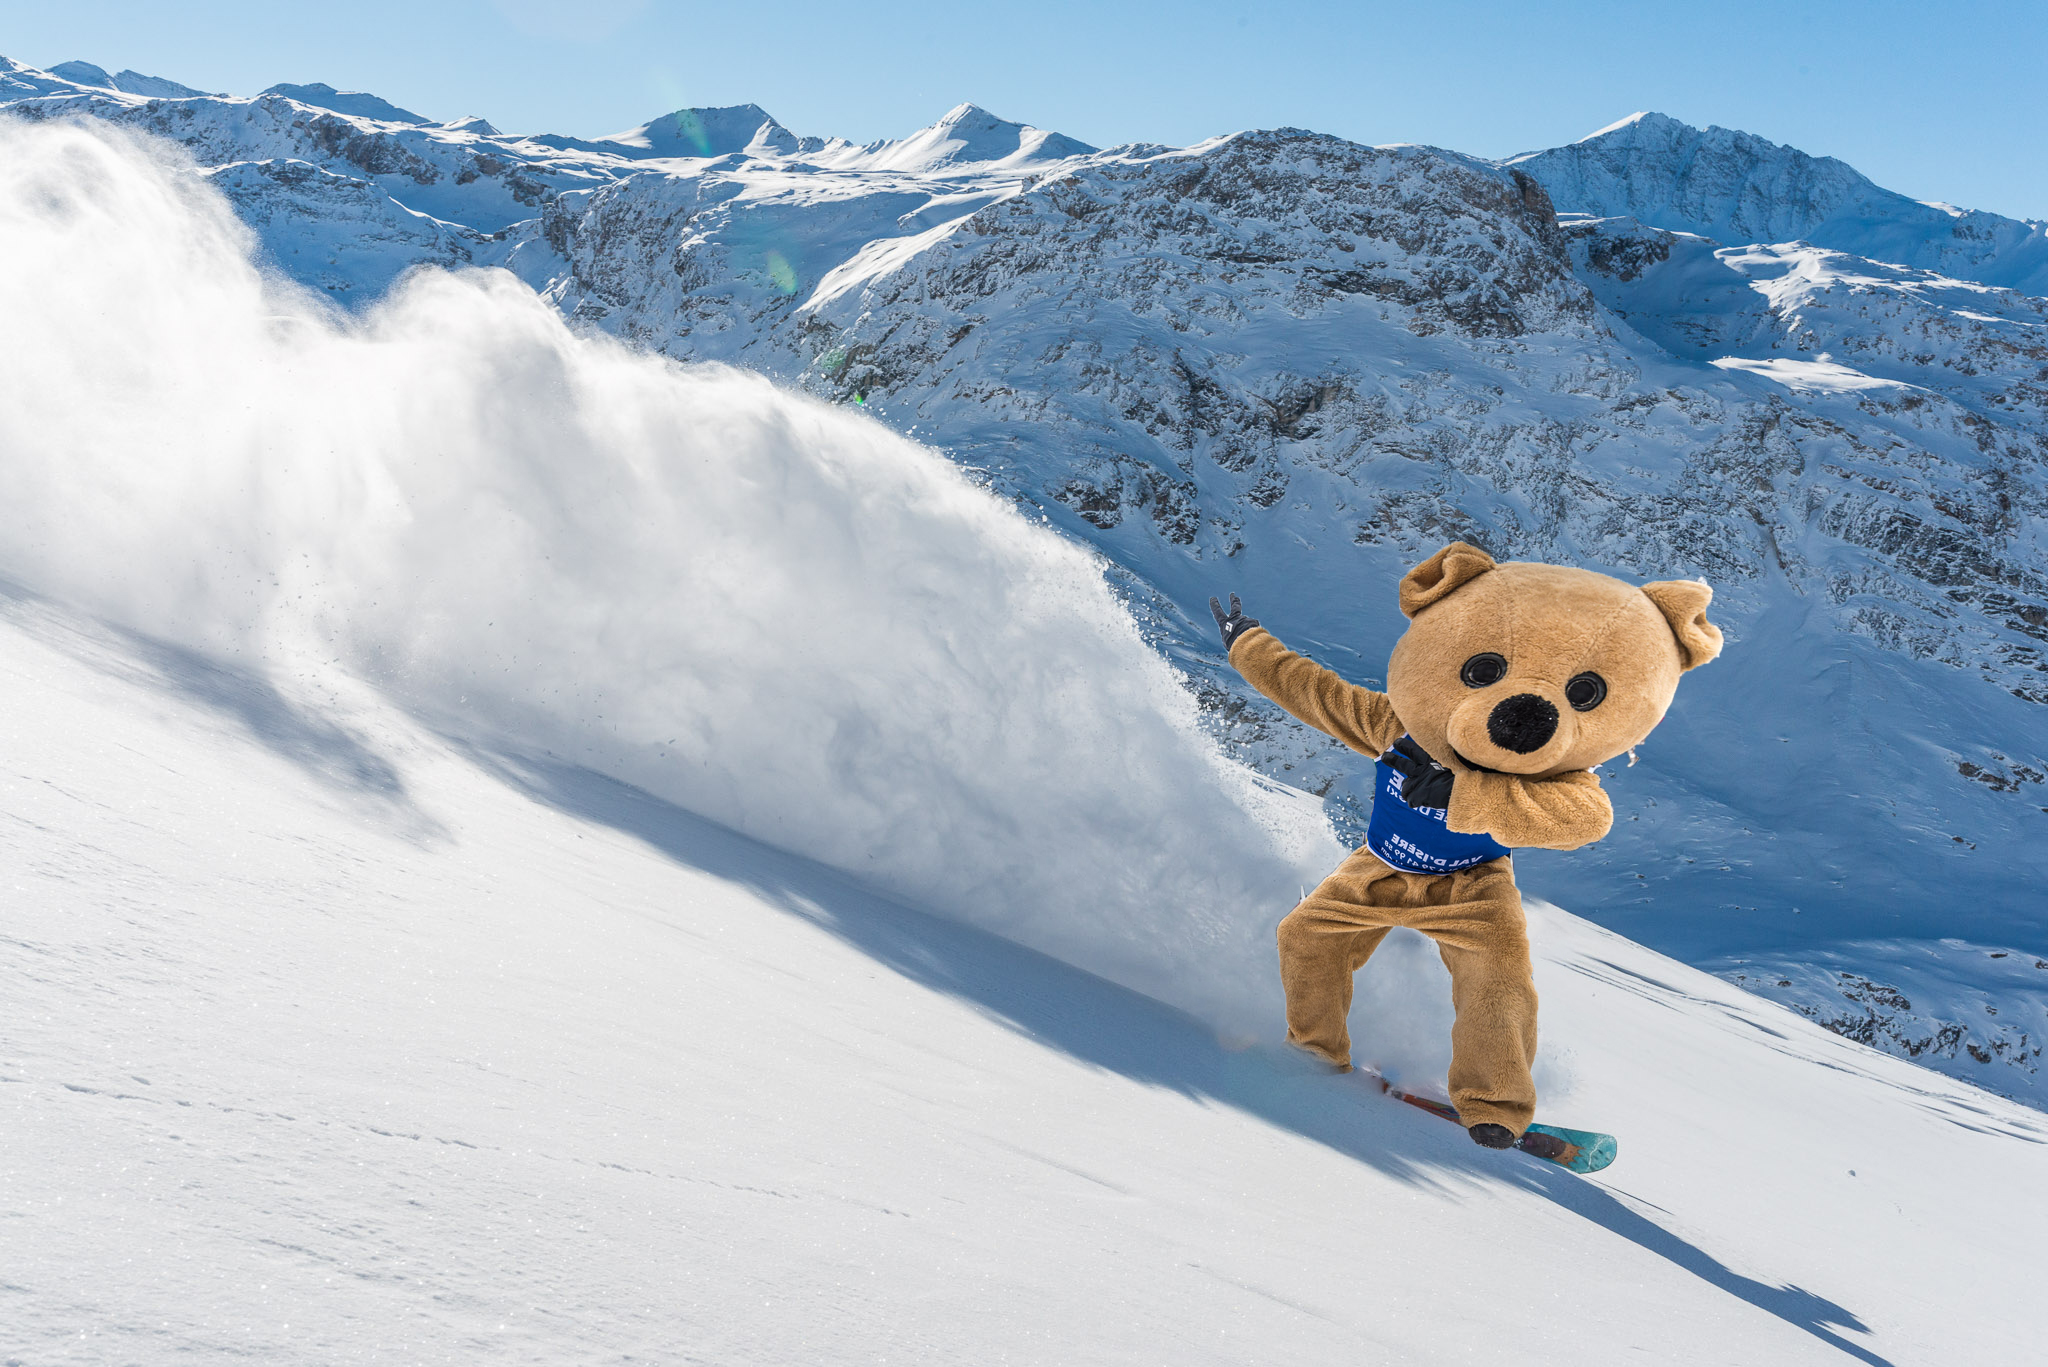 Oxygène bear will be animating the 3 valleys this winter